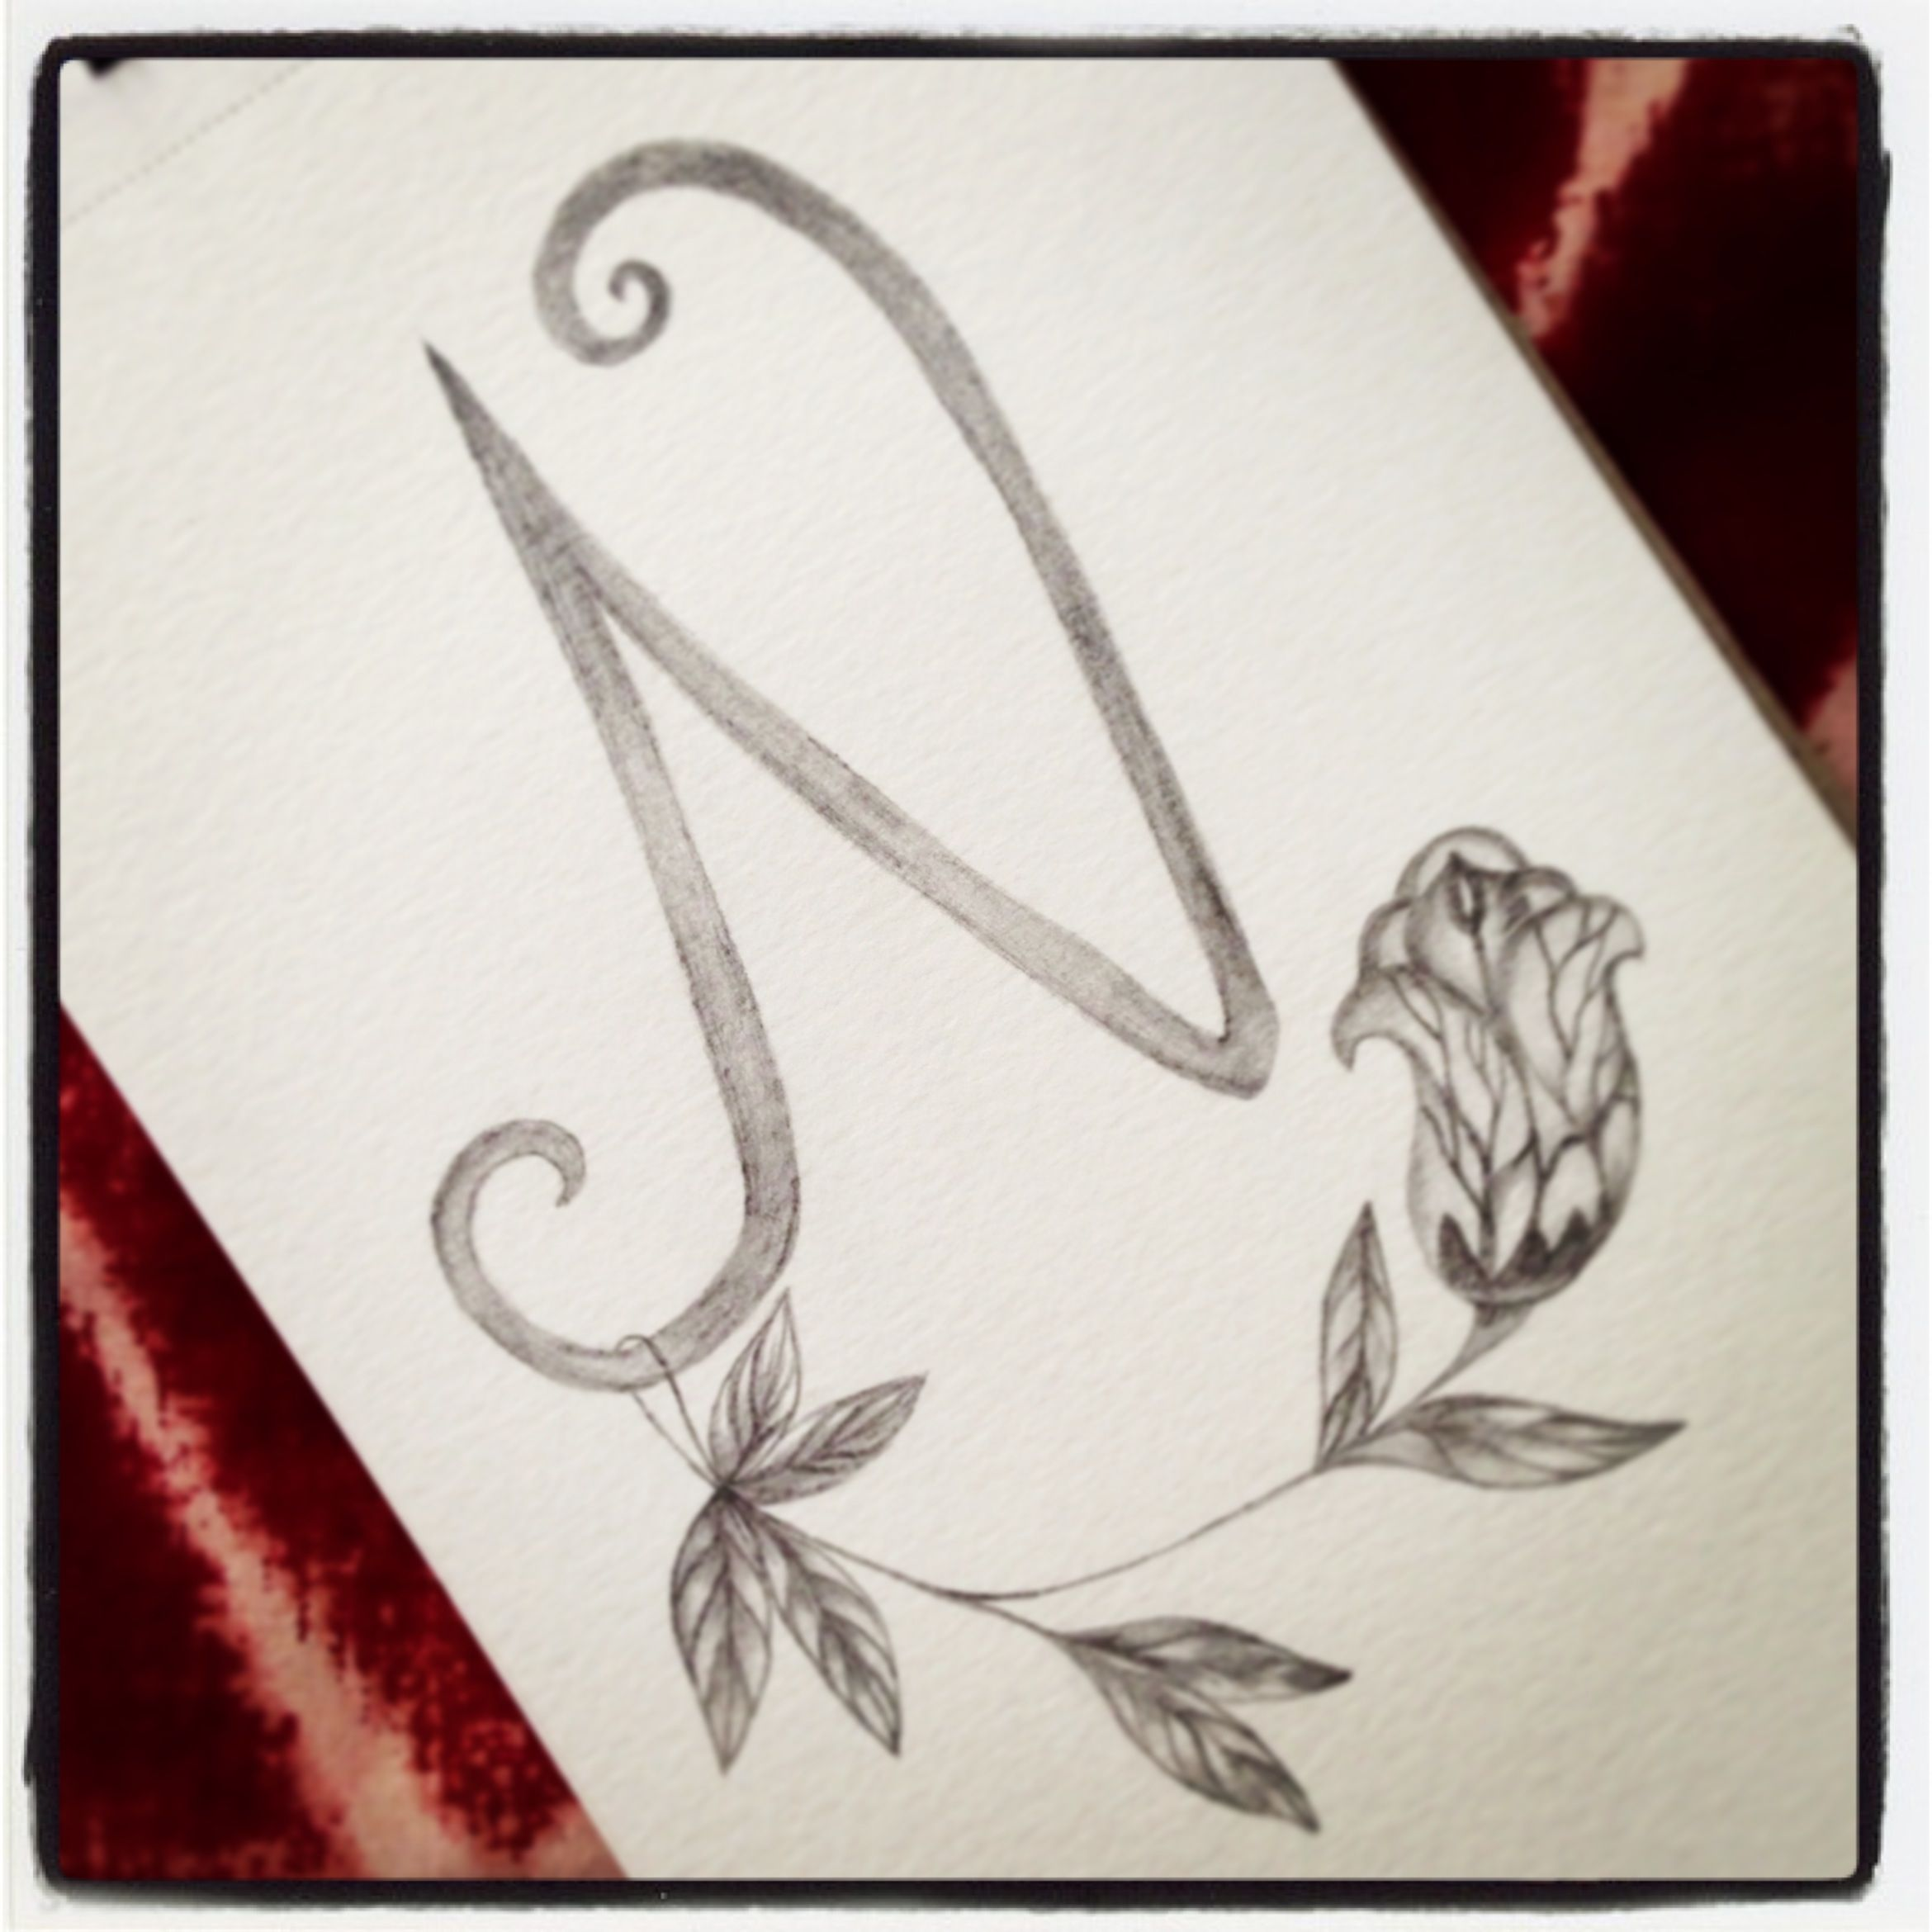 Letter n the initial of my name one of my drawing in pencil practicing